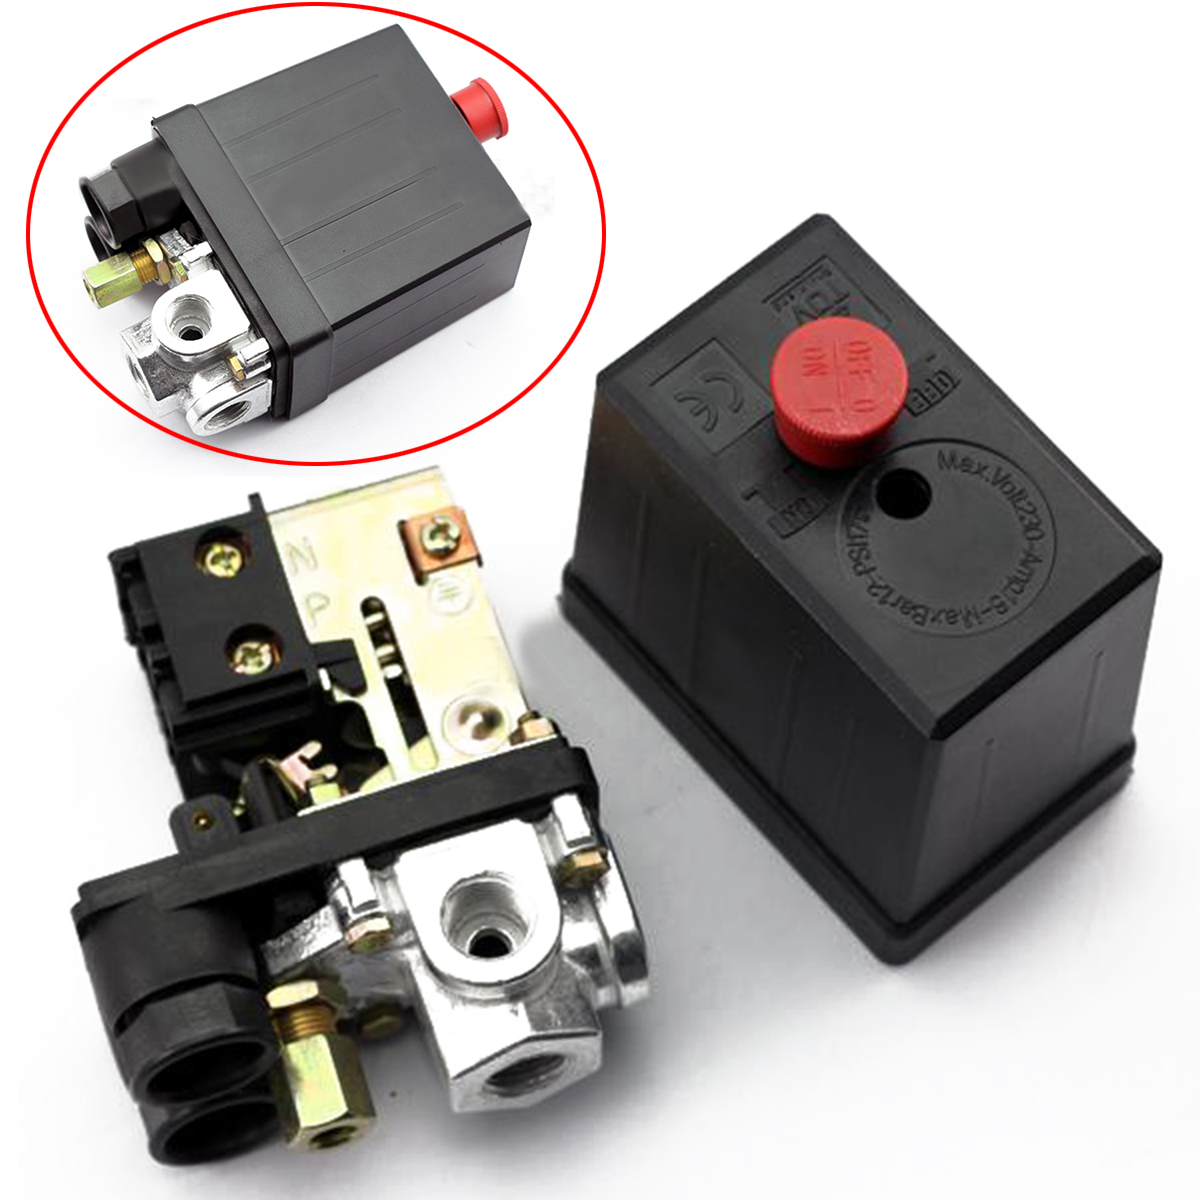 High Quality Durable Mayitr Air Compressor Pressure Switch 240V 16A 90 PSI -120 PSI Heavy Duty Red ON/OFF Switch Control Valve high quality 1pc heavy duty air compressor pressure switch control valve 90 psi 120 psi air compressor switch control